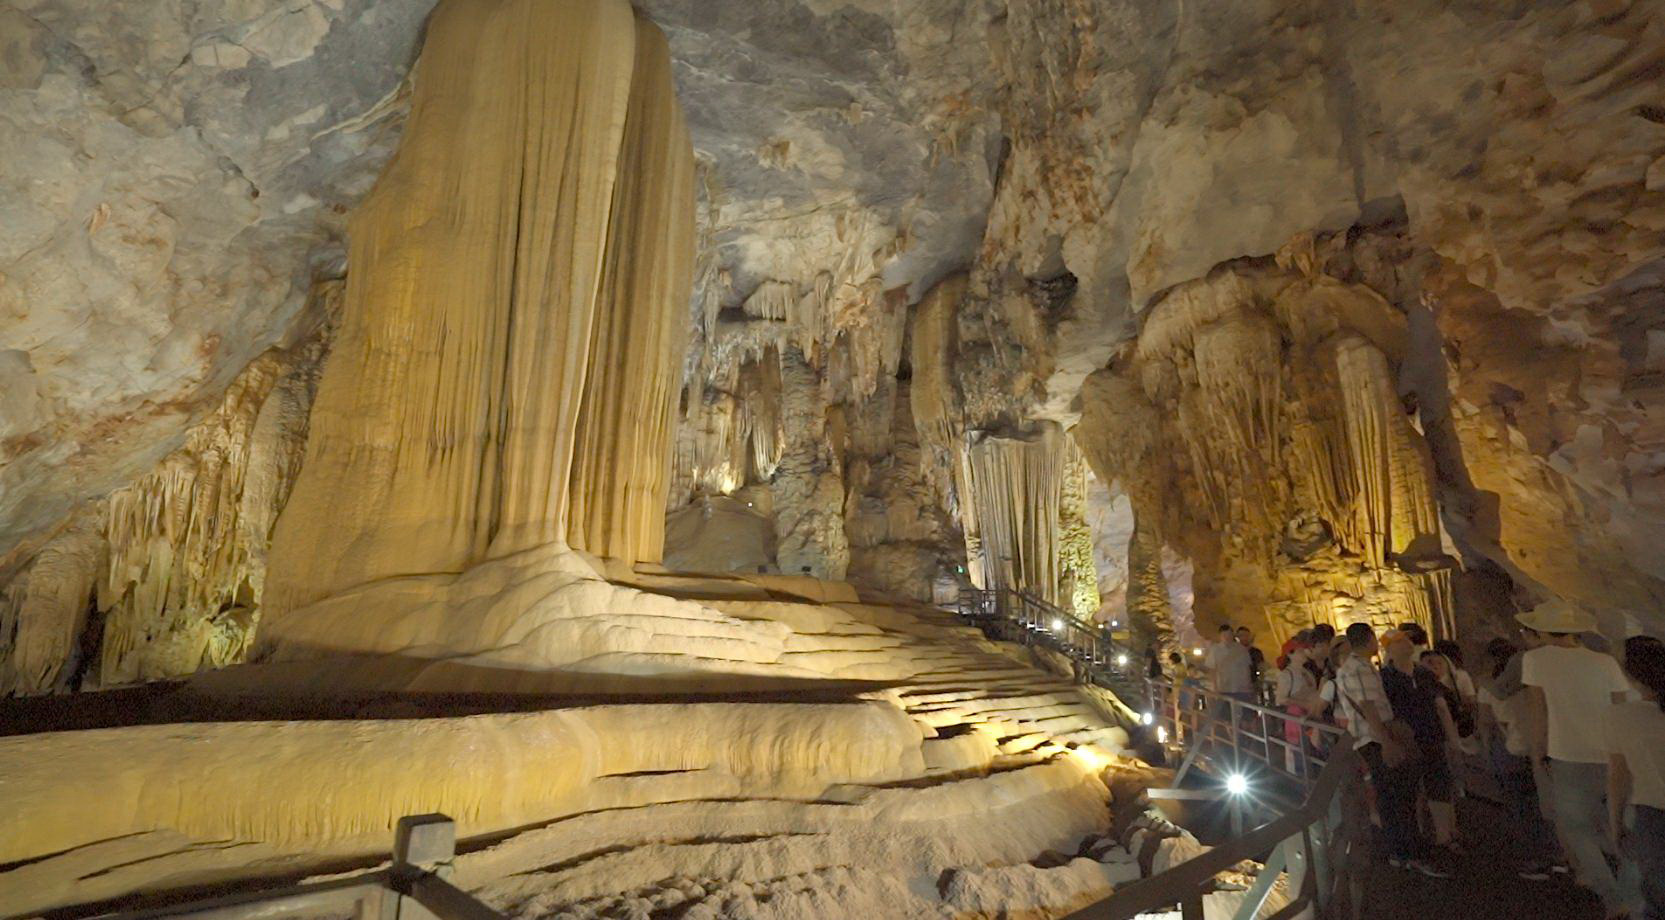 A score of stalactites in Phong Nha Cave in Quang Binh Province, Vietnam are captured in this photo.